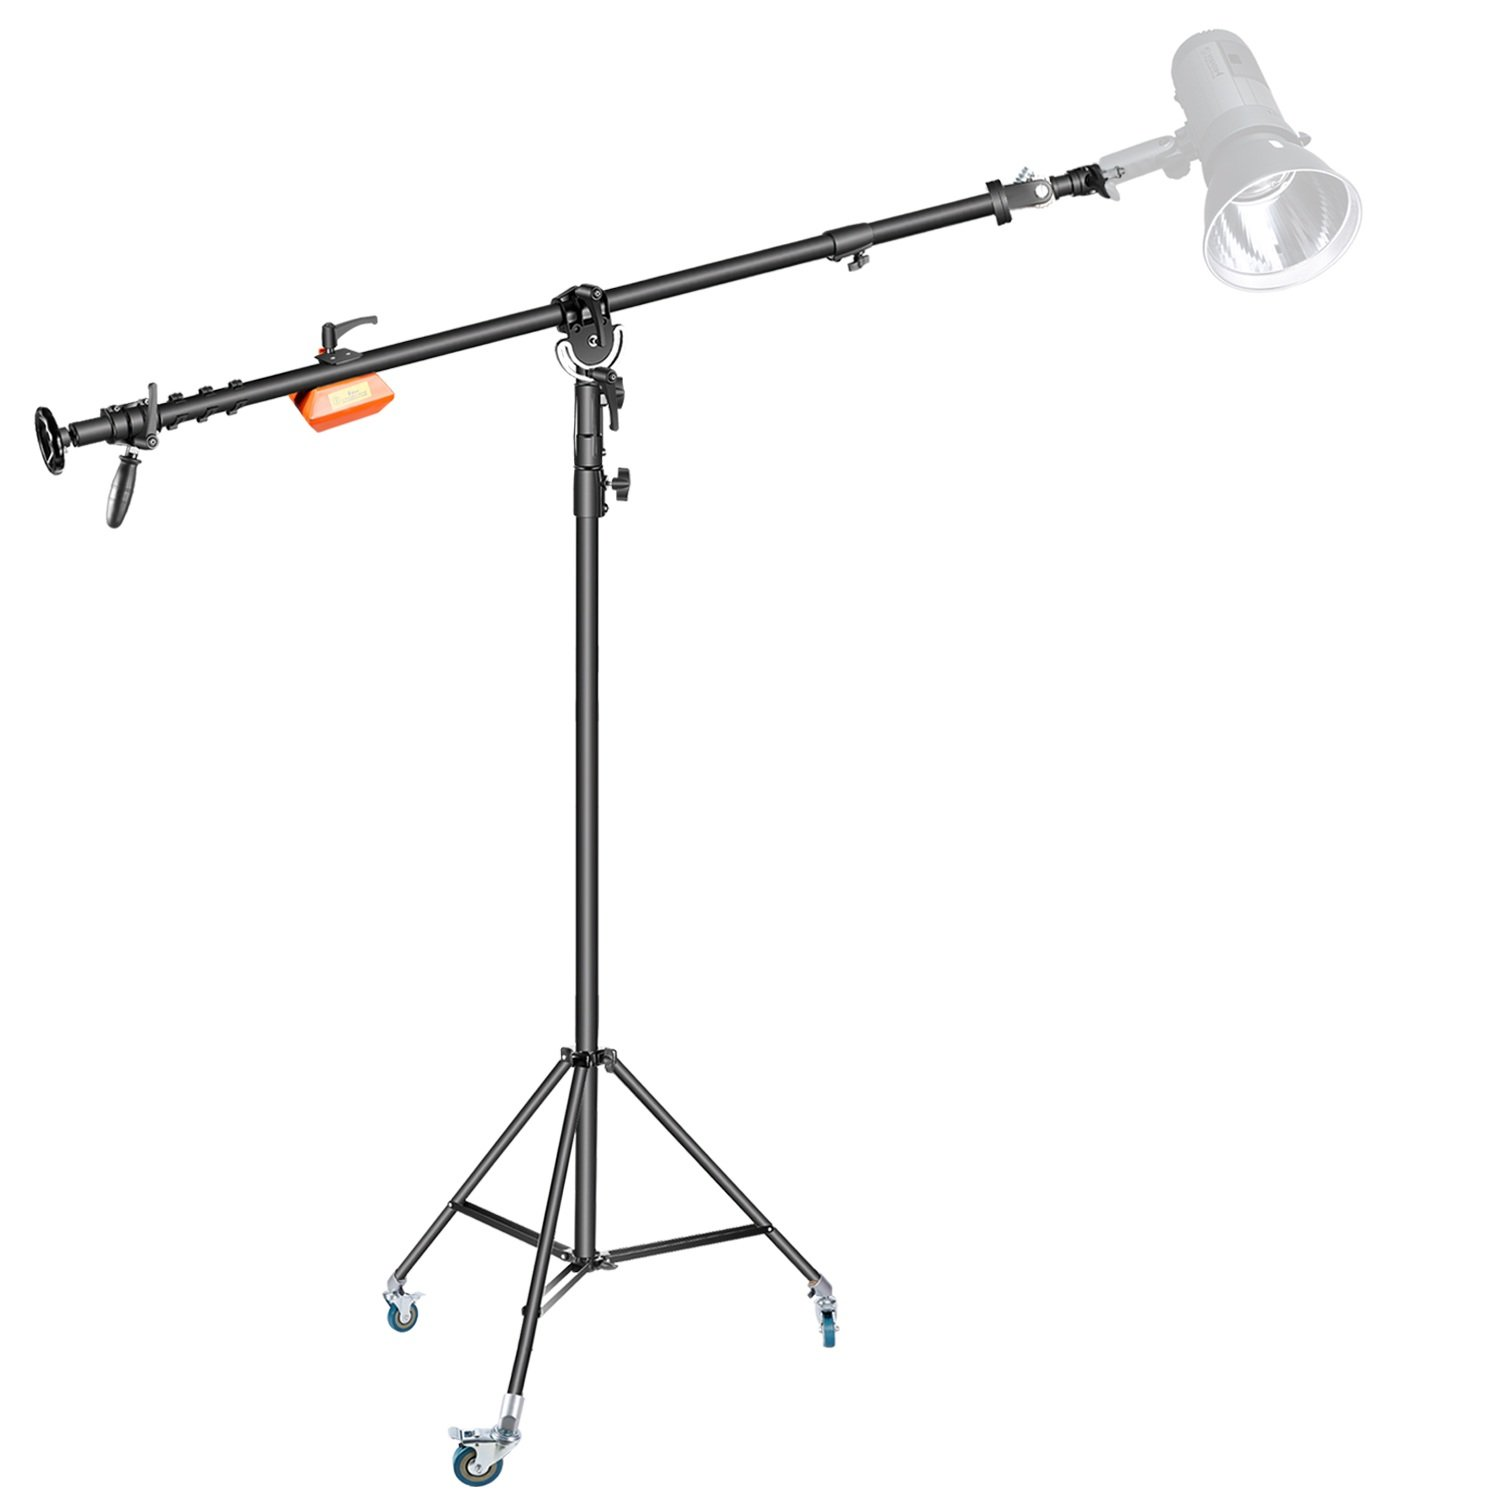 Neewer Pro Video Counter Weight Boom Stand Set: Light Stand with Swivel Caster Wheel(55 inches), 61.8-103 inches Boom Arm and 13 pounds Counter Weight for Monolight Strobe Light Ring Light Softbox by Neewer